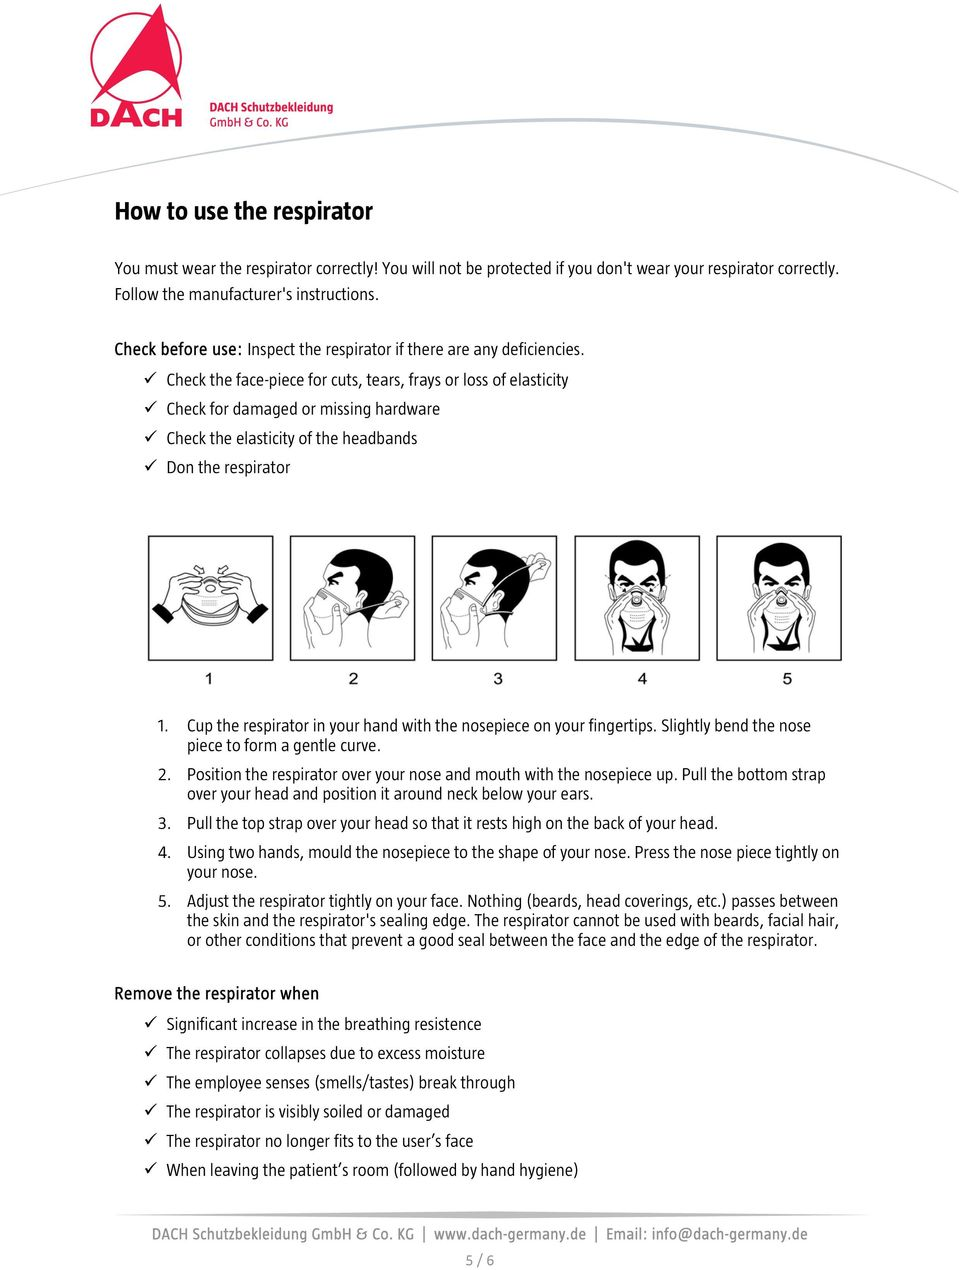 Check the face-piece for cuts, tears, frays or loss of elasticity Check for damaged or missing hardware Check the elasticity of the headbands Don the respirator 1.